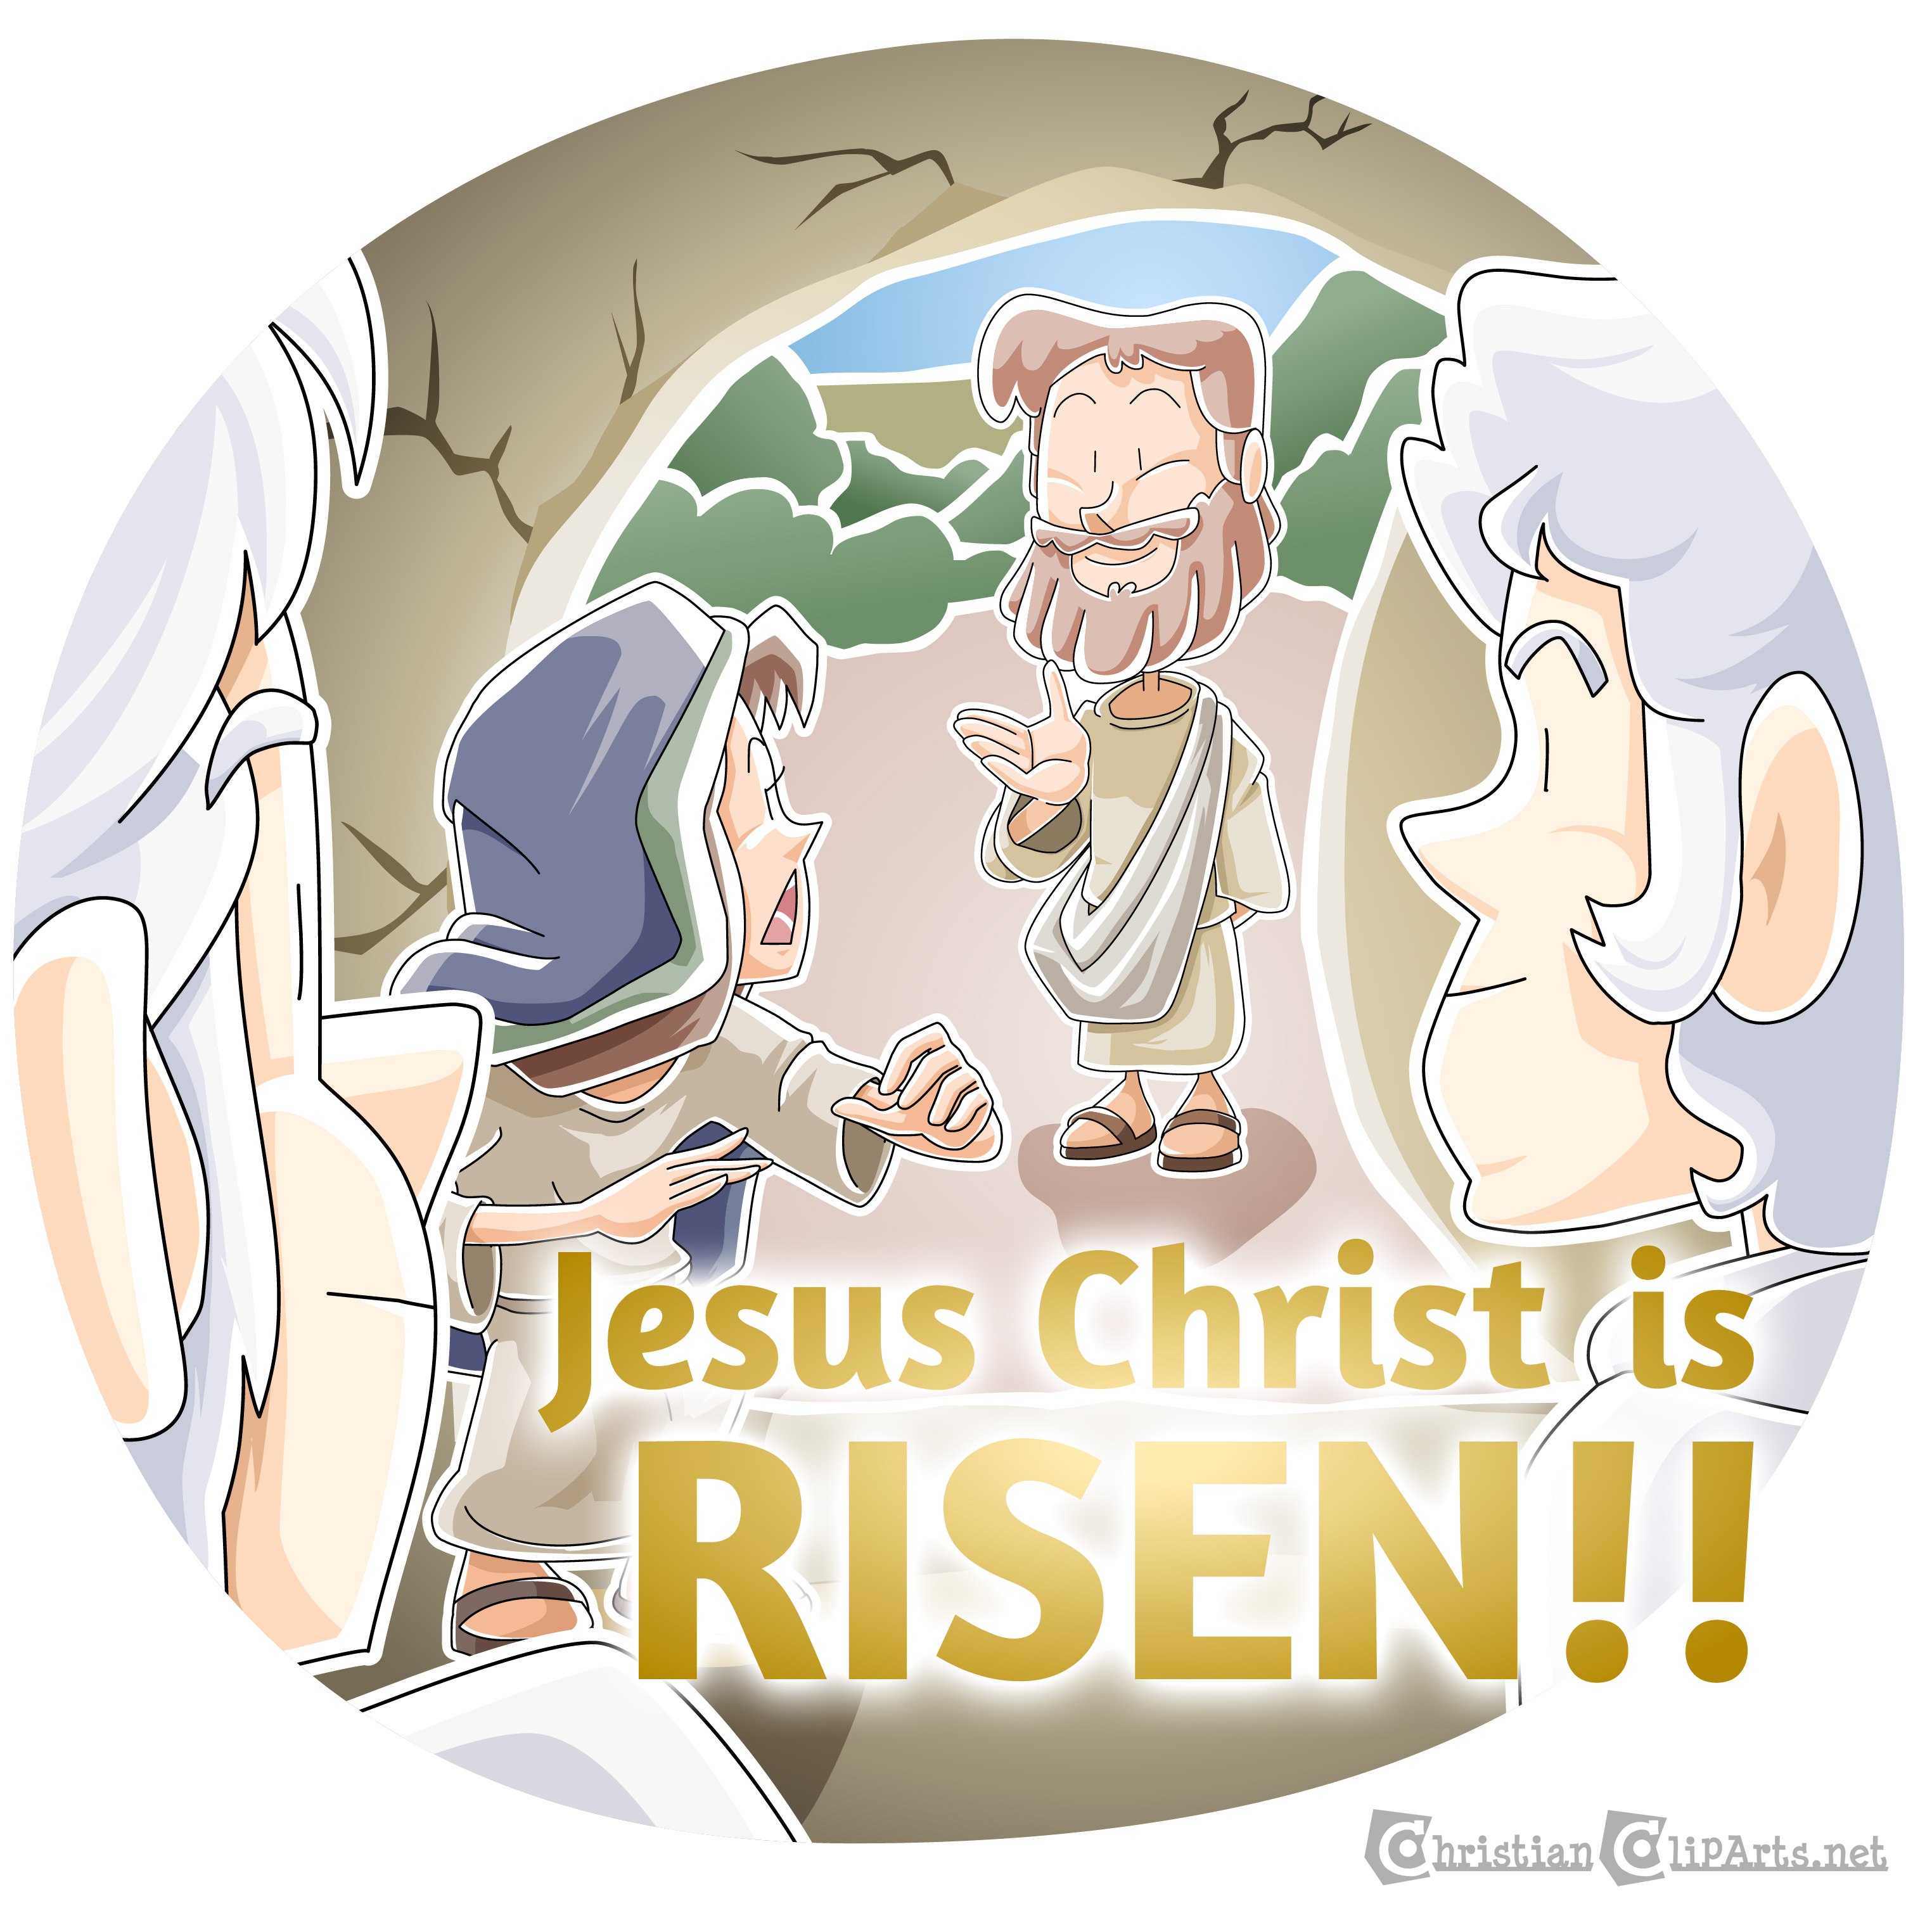 Christian Clip Arts .net blog: Today's Christian Clipart: Jesus.